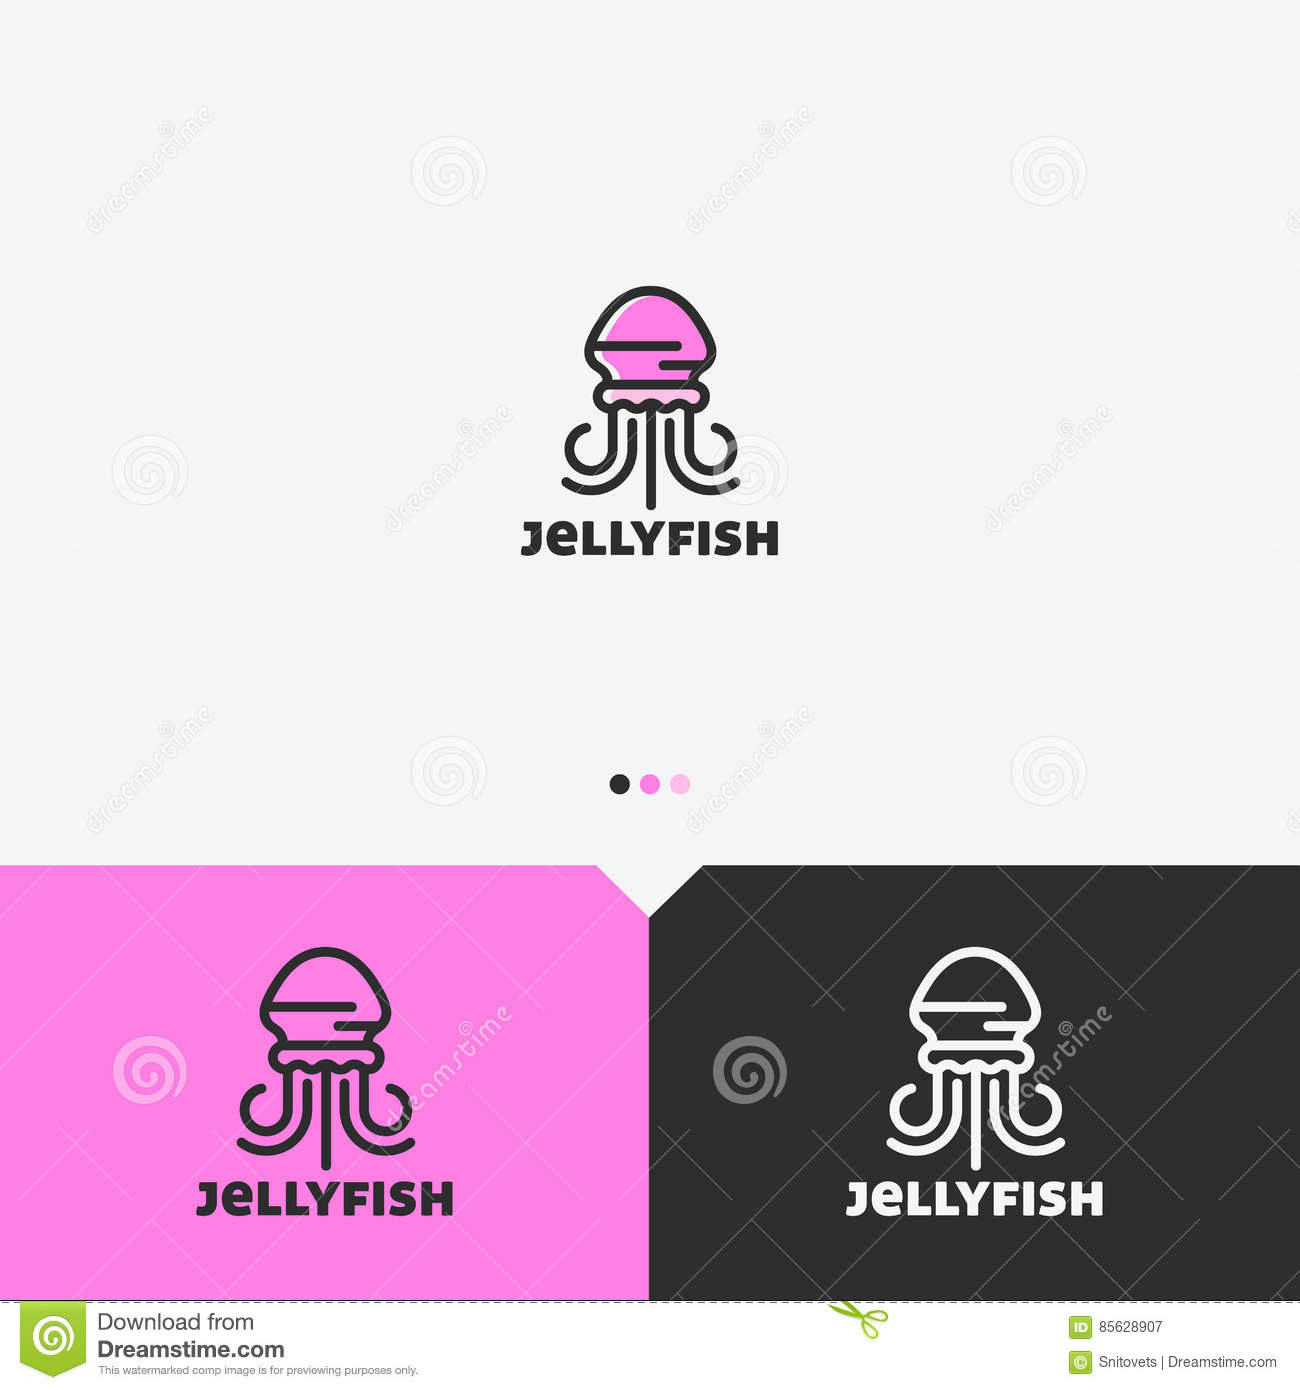 pink jellyfish logo design template simple and clean outline pink jellyfish logo design template simple and clean outline style color and monochromatic version